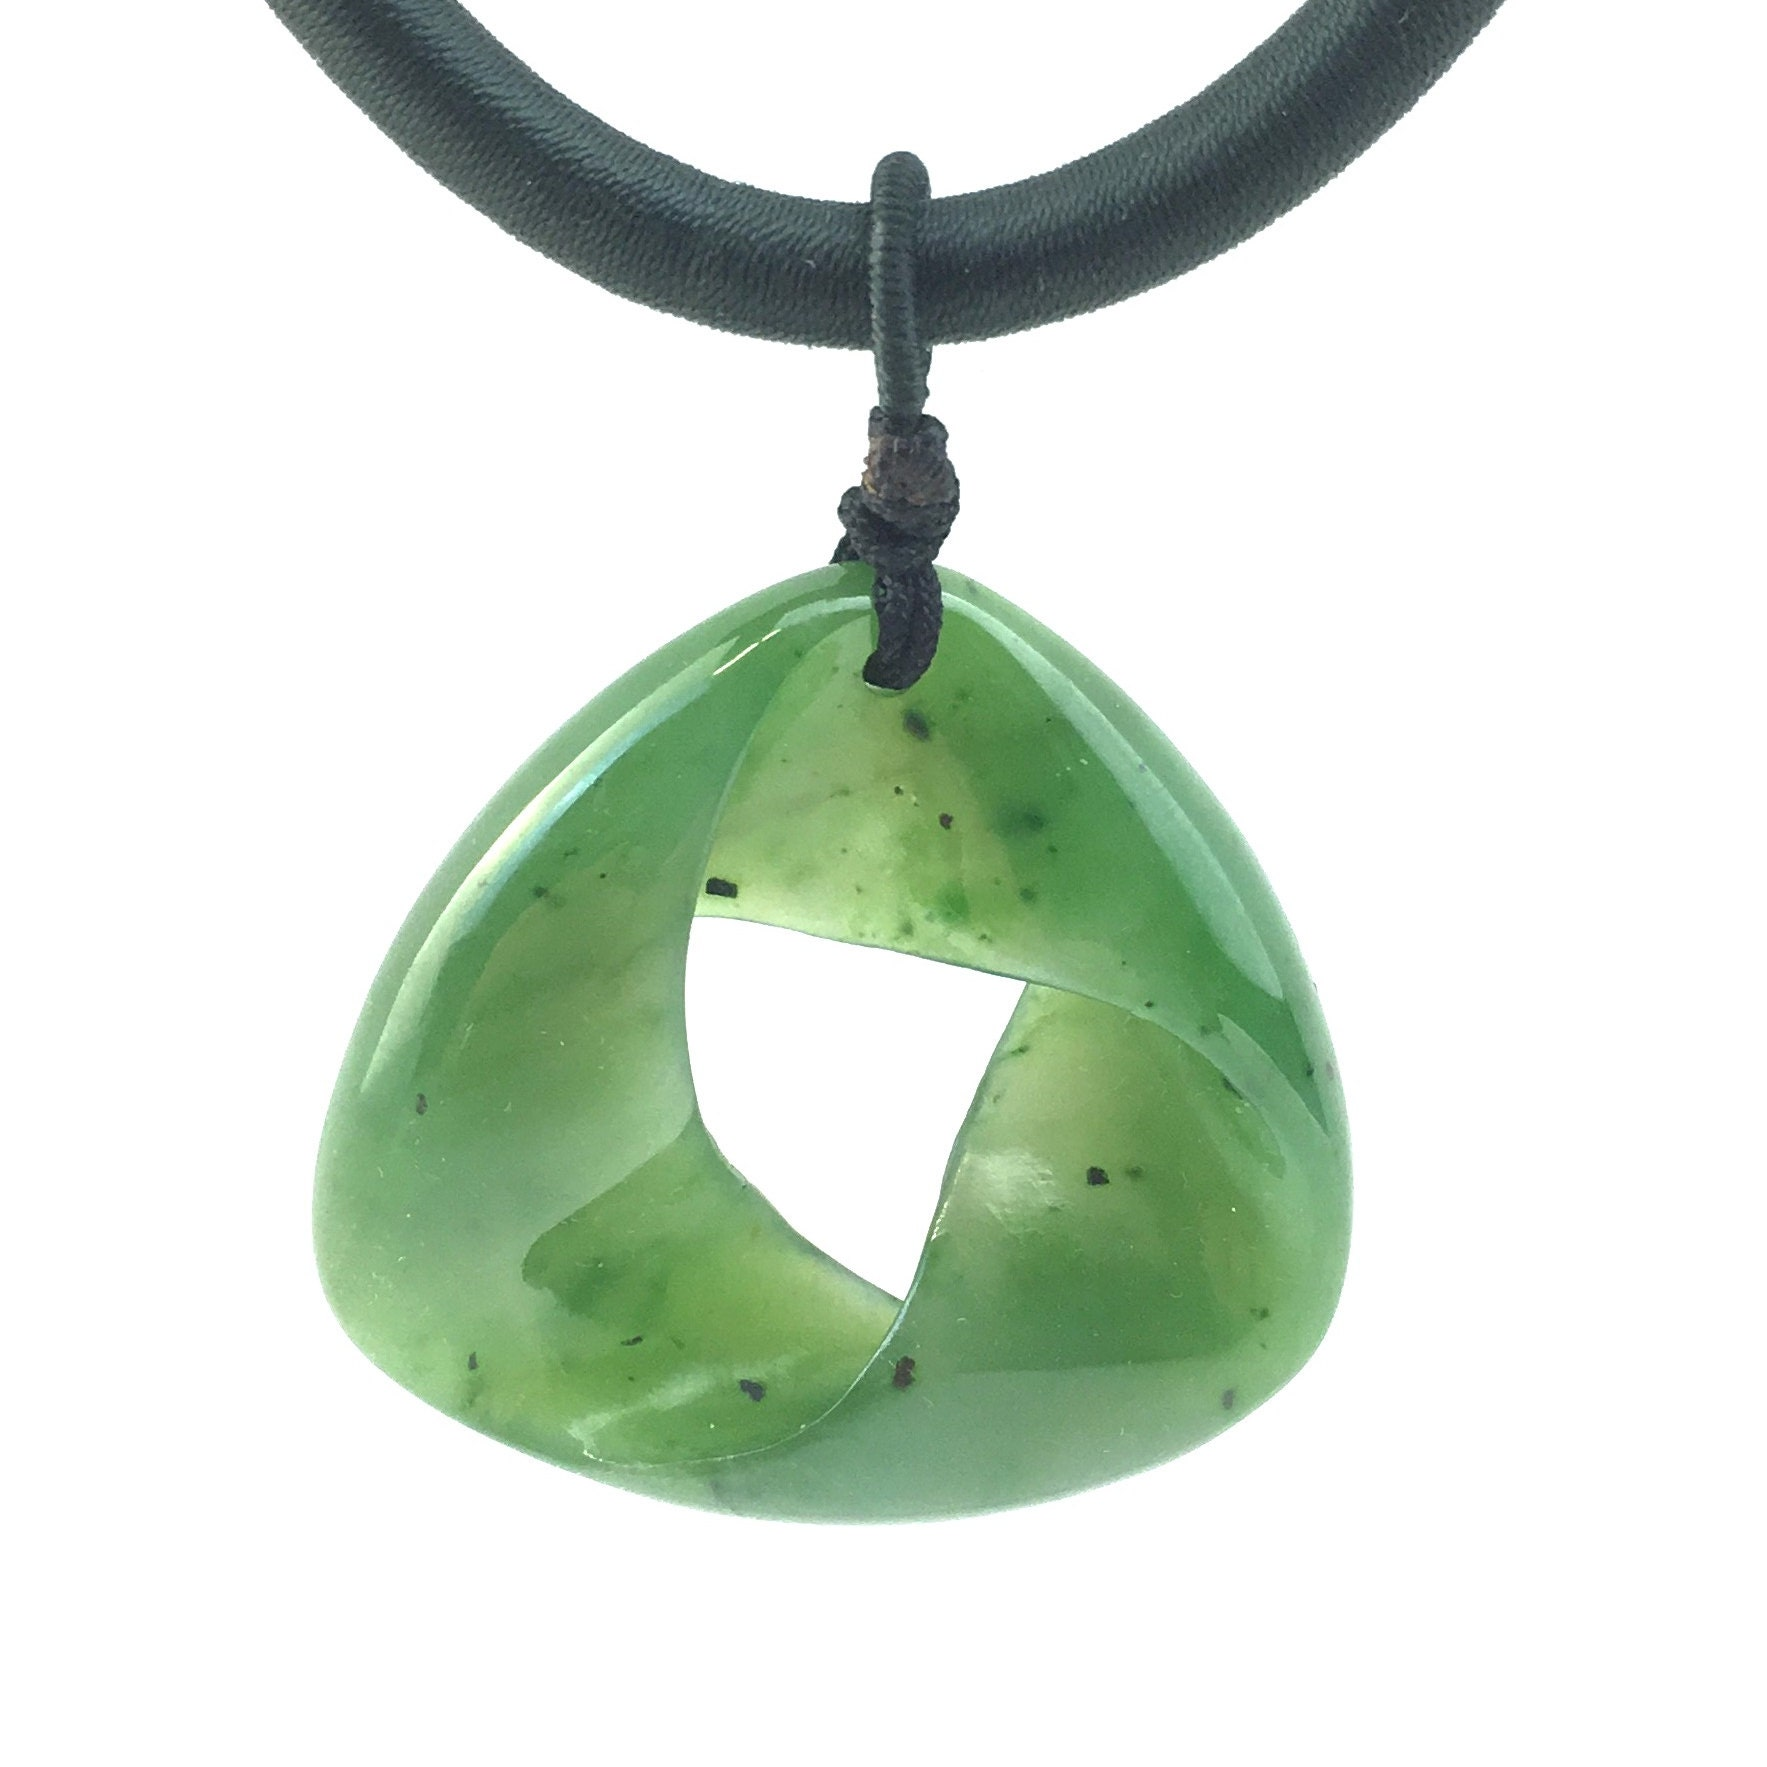 Pear Shape AG-9994 Pendant Stone Pretty Look Nephrite Jade With Corundum Cabochon Nephrite Suppliers Jewellery Making Size 35x15x6 MM